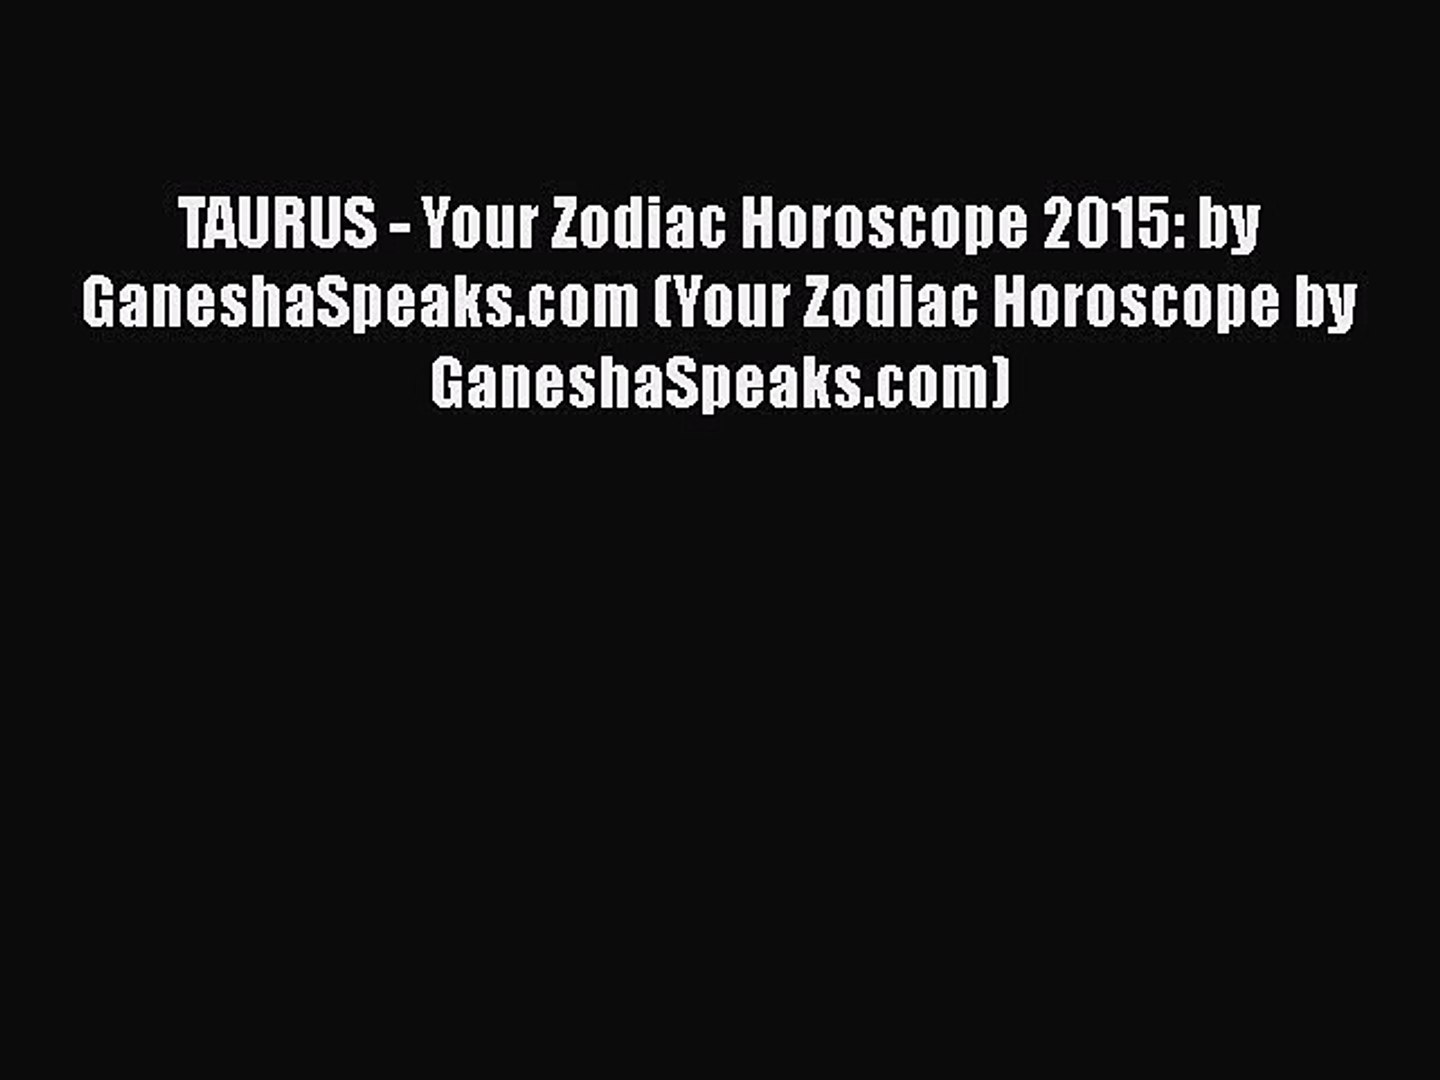 Download TAURUS - Your Zodiac Horoscope 2015: by GaneshaSpeaks com (Your  Zodiac Horoscope by